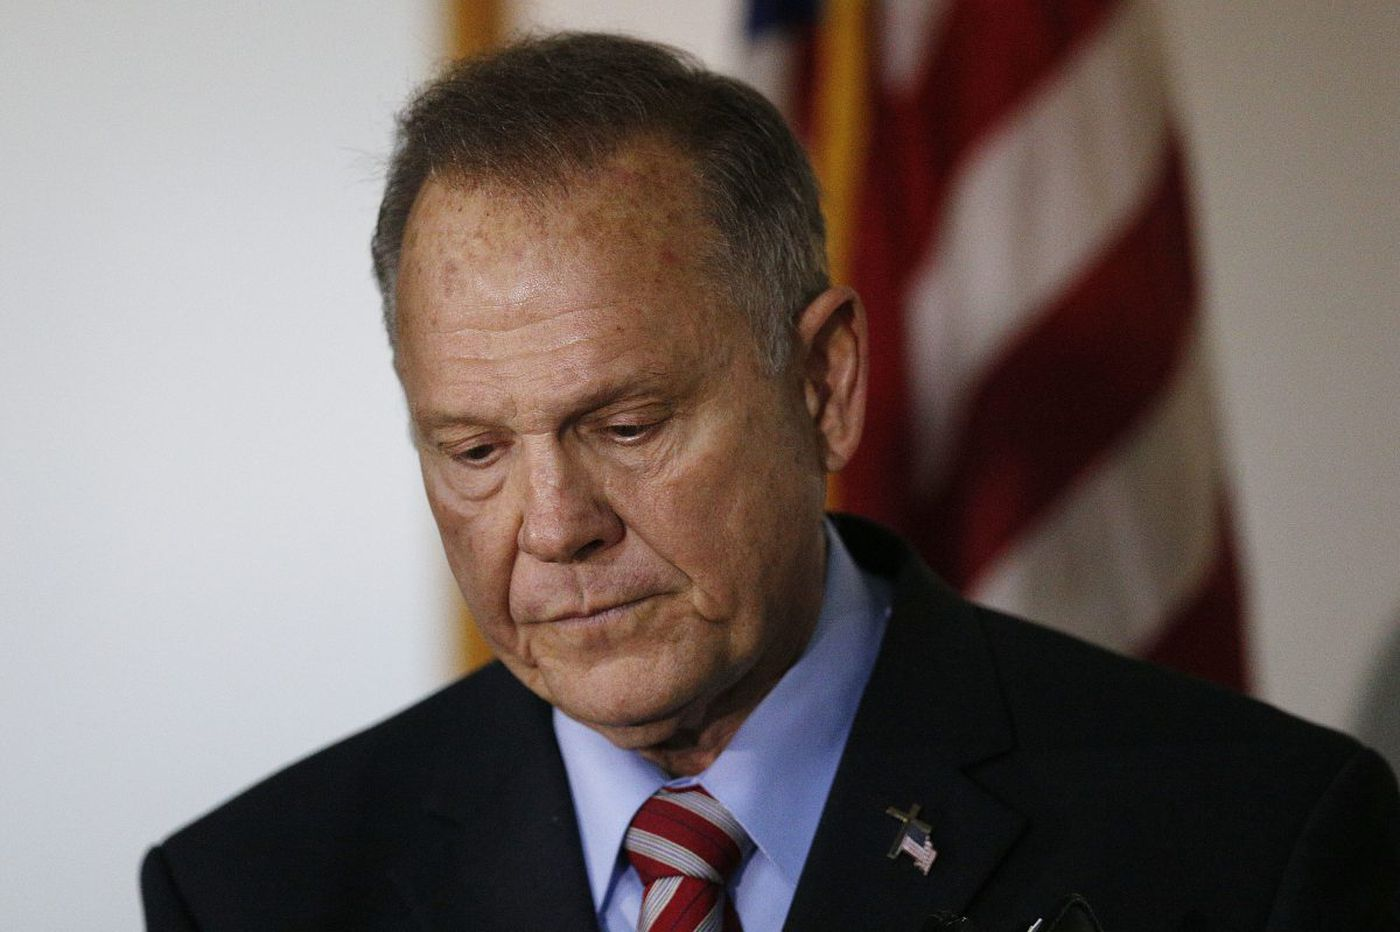 A message to Roy Moore from his accuser: 'I am done being silent.'